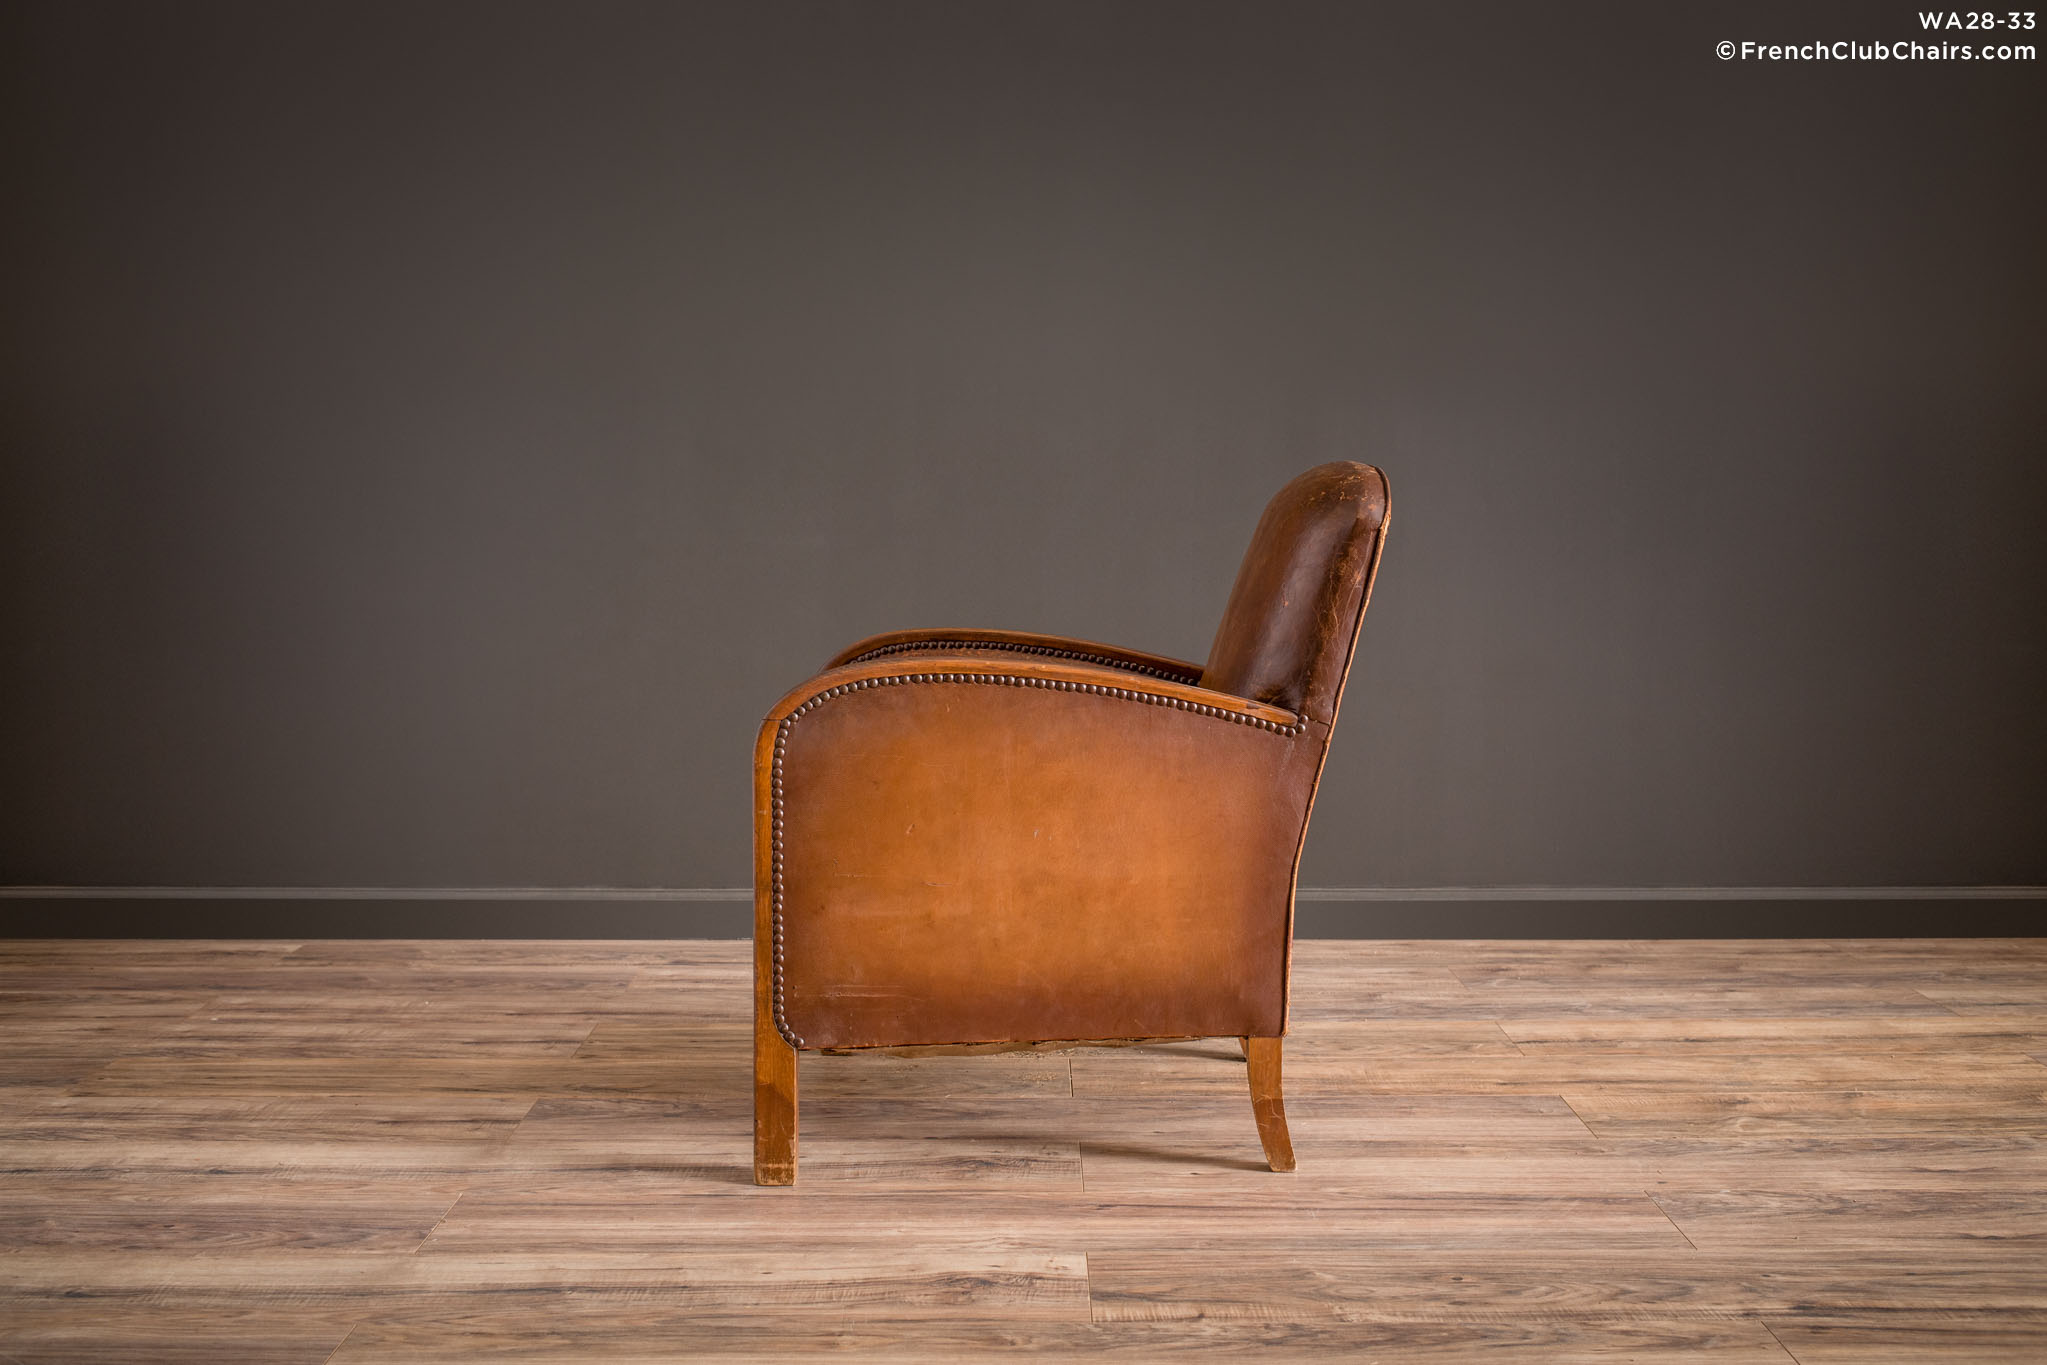 WA_28-33_Belfort_Sweet_Library_Solo_R_4LT1-williams-antiks-leather-french-club-chair-wa_fcccom